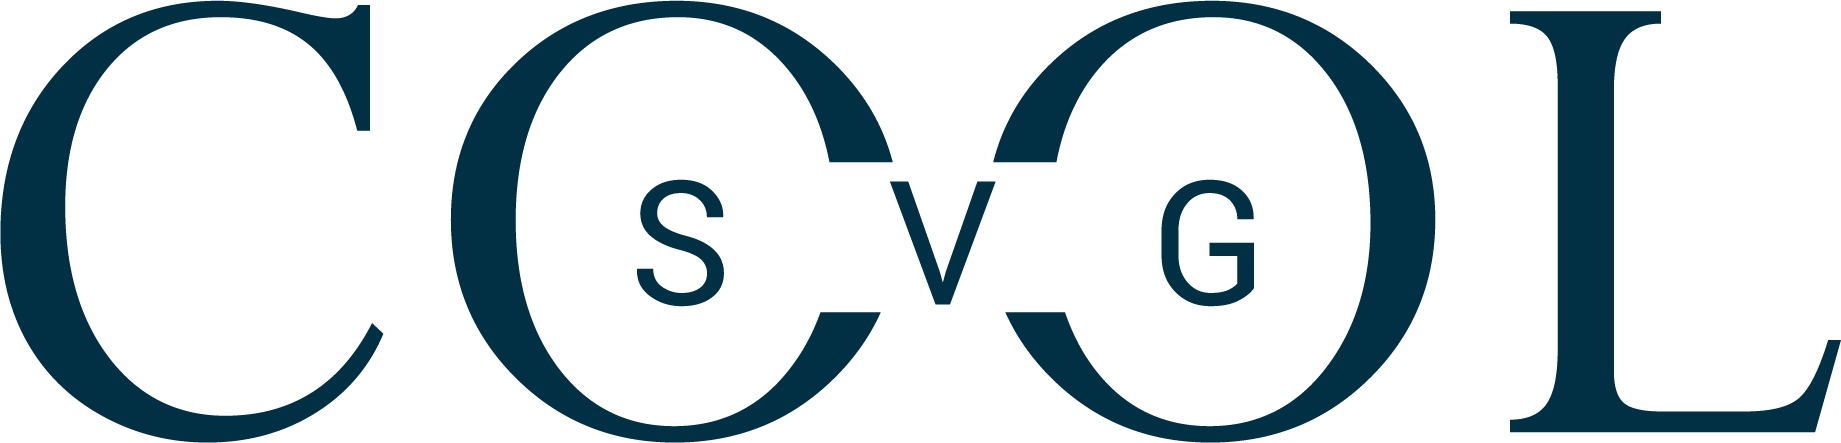 Chanel Logo Svg Chanel Logo Png Chanel Svg